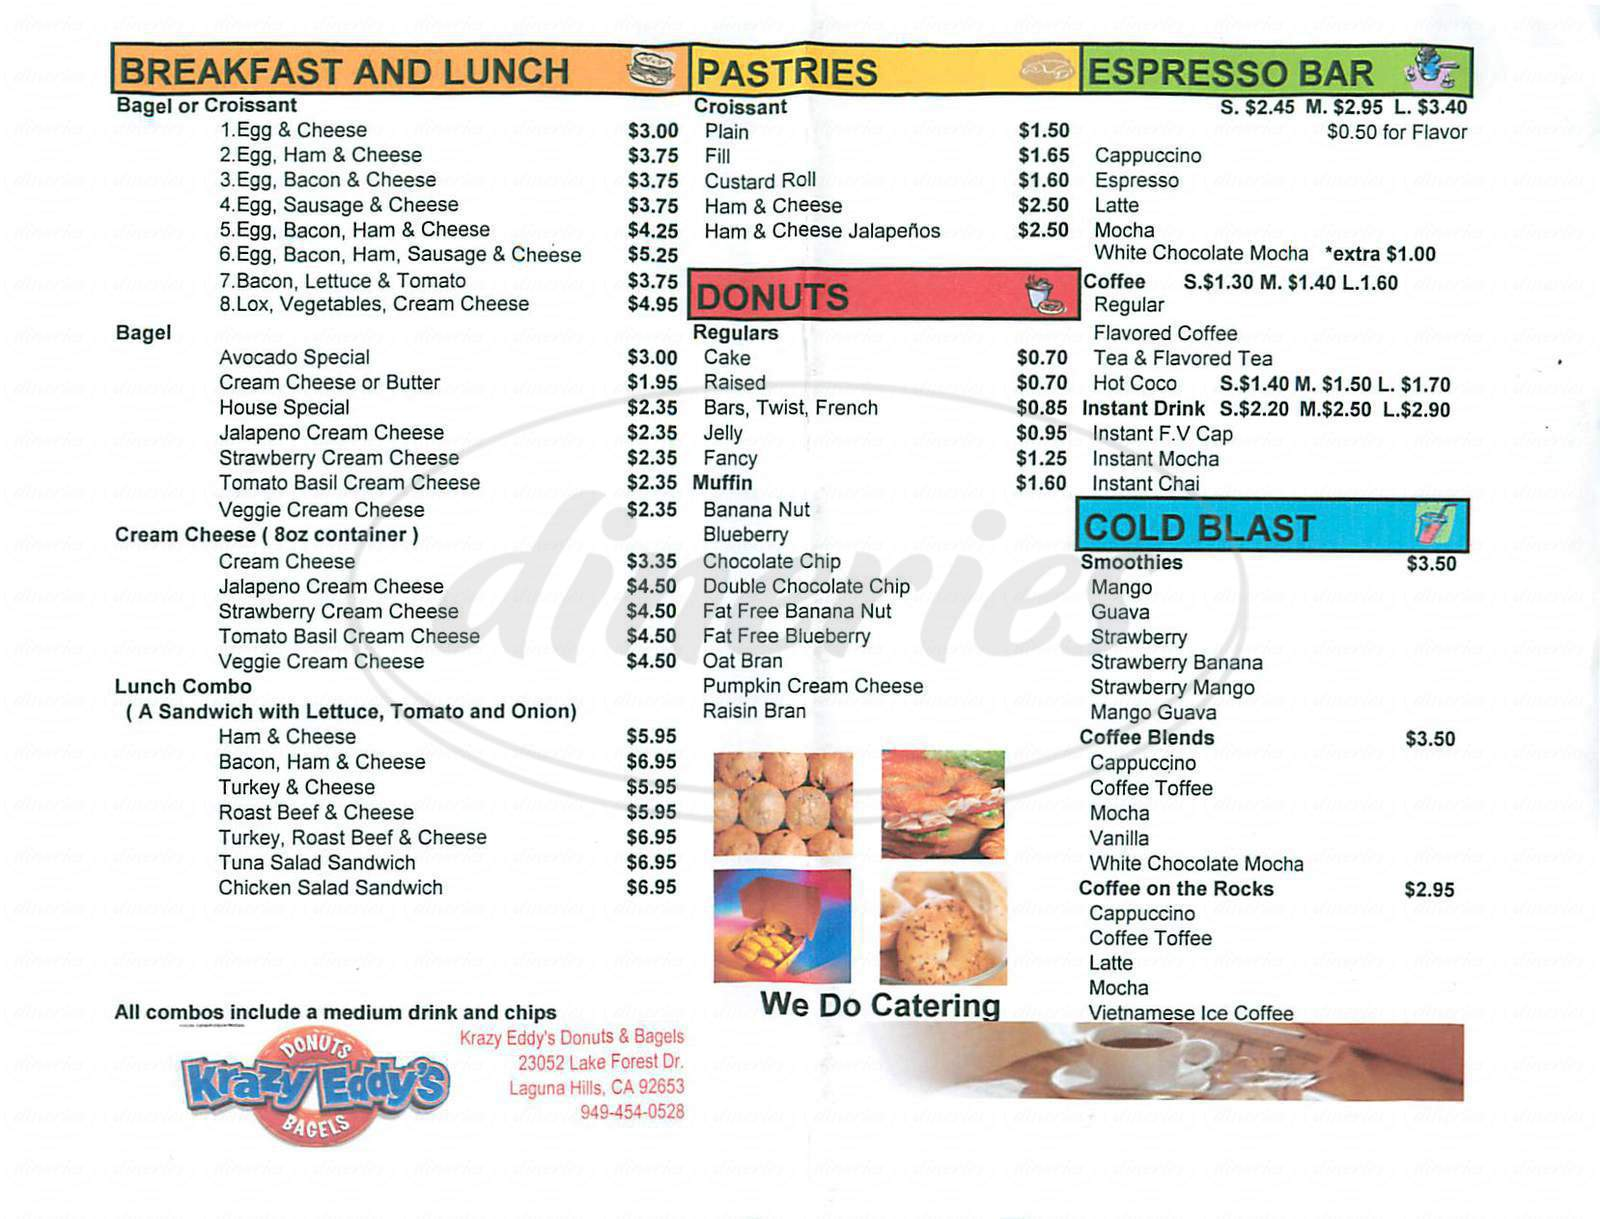 menu for Krazy Eddy's Donuts & Bagels